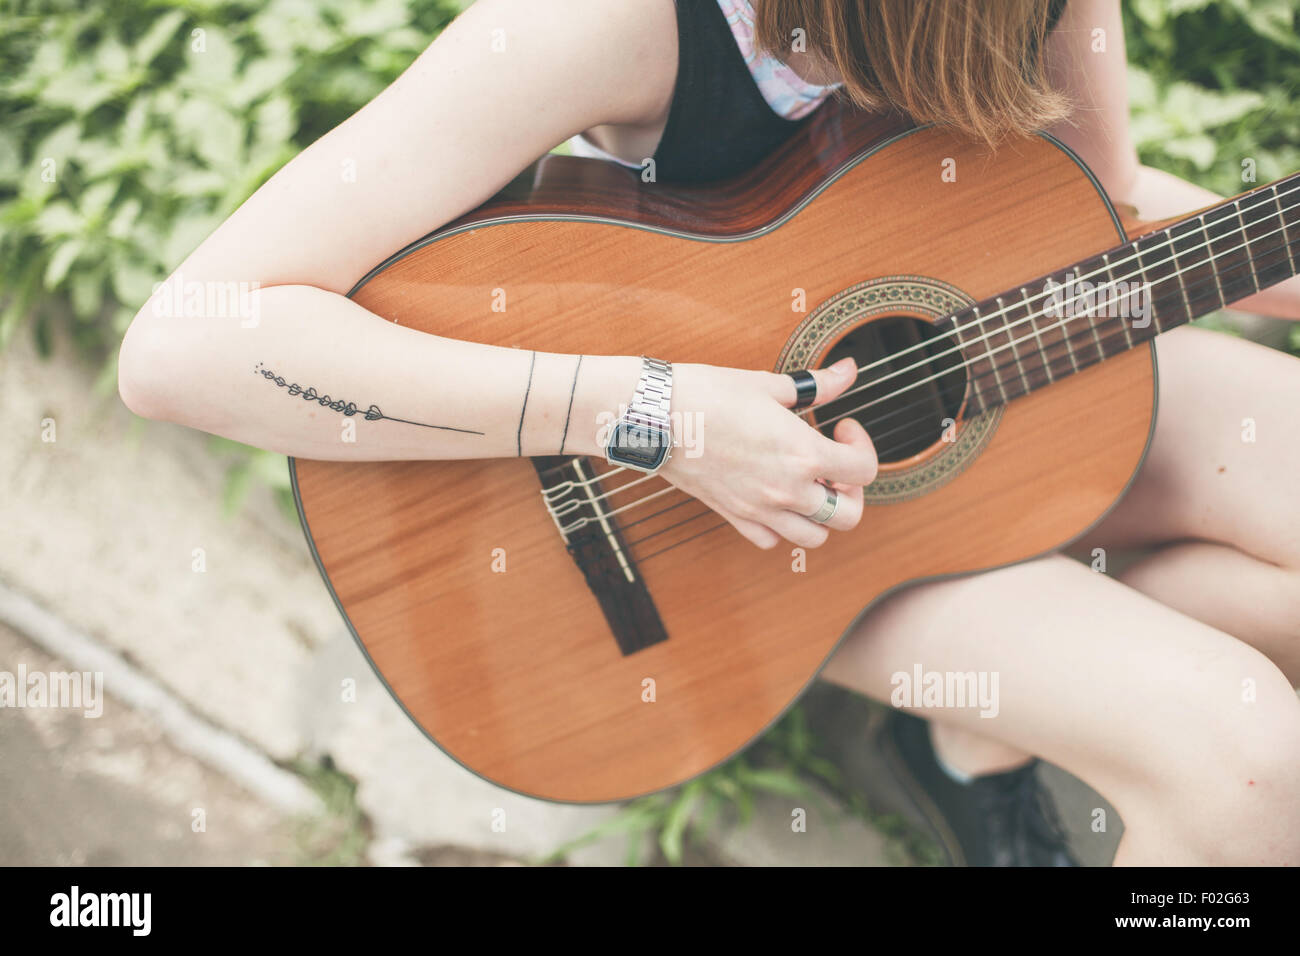 Close-up of a woman playing the guitar - Stock Image